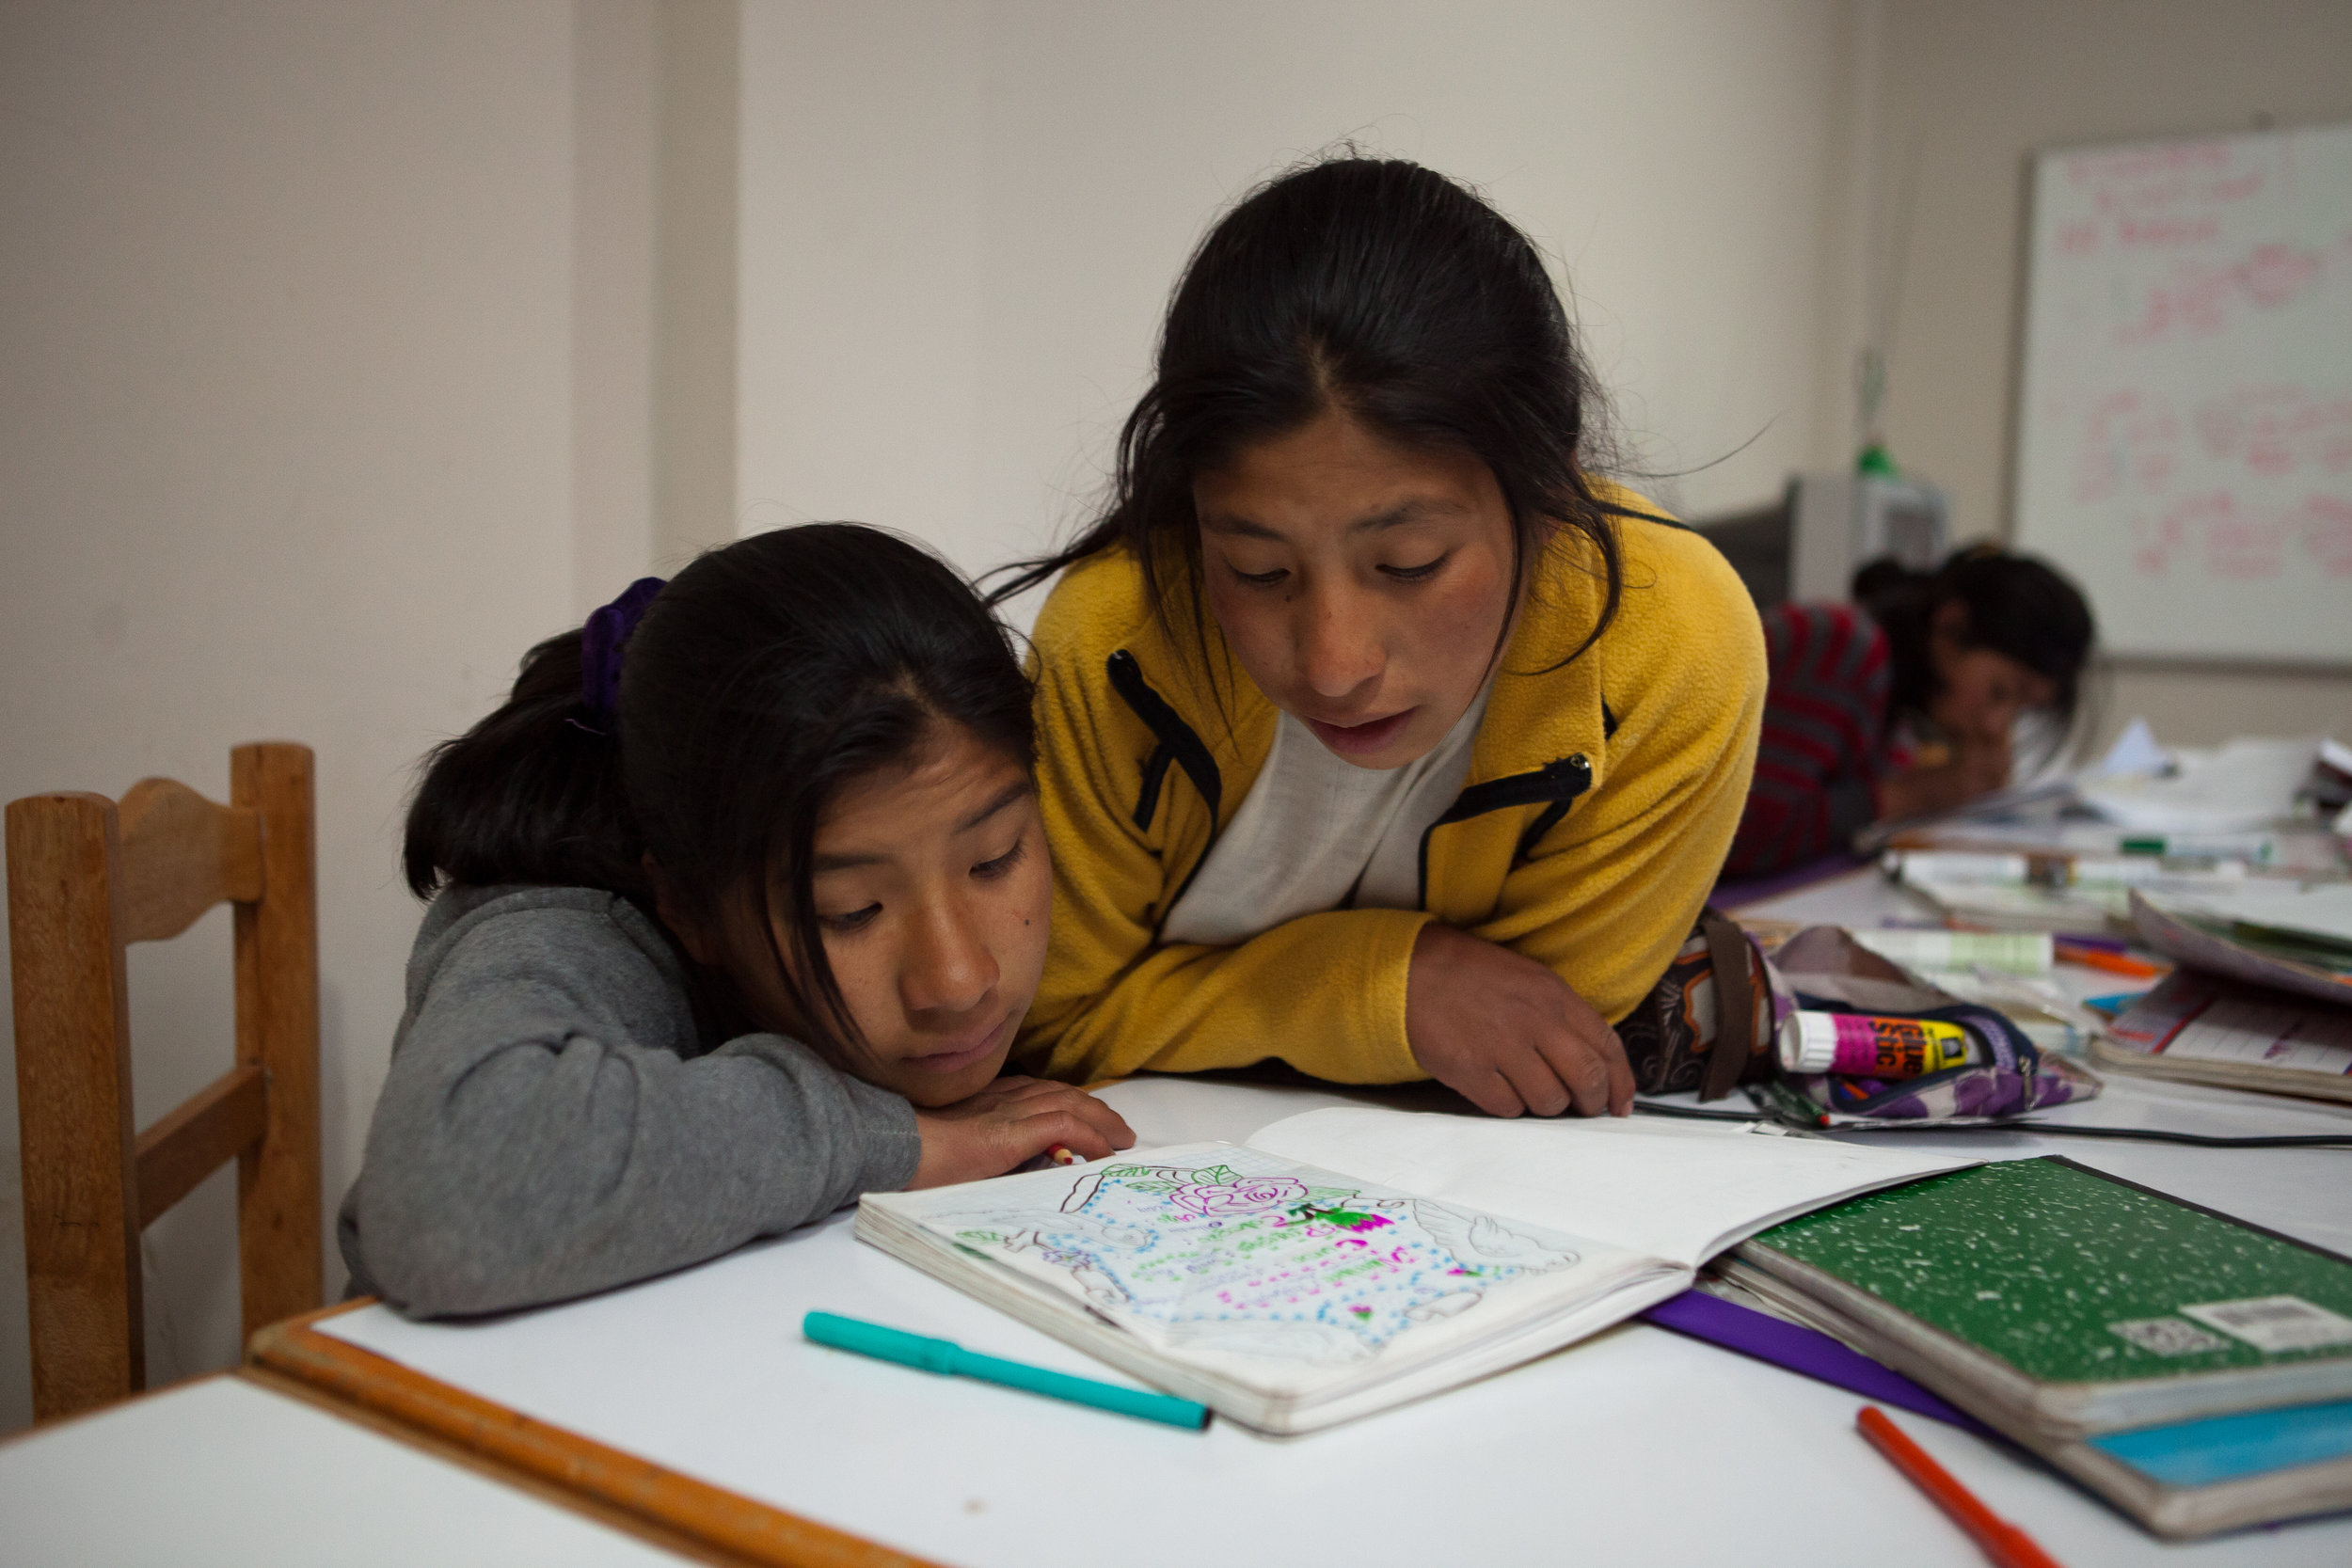 Elizabeth and Nilda look over notes from the day's classes during homework time. 15 girls live in the dorm together and are all in secondary school - the older girls often help the younger girls with their studies.